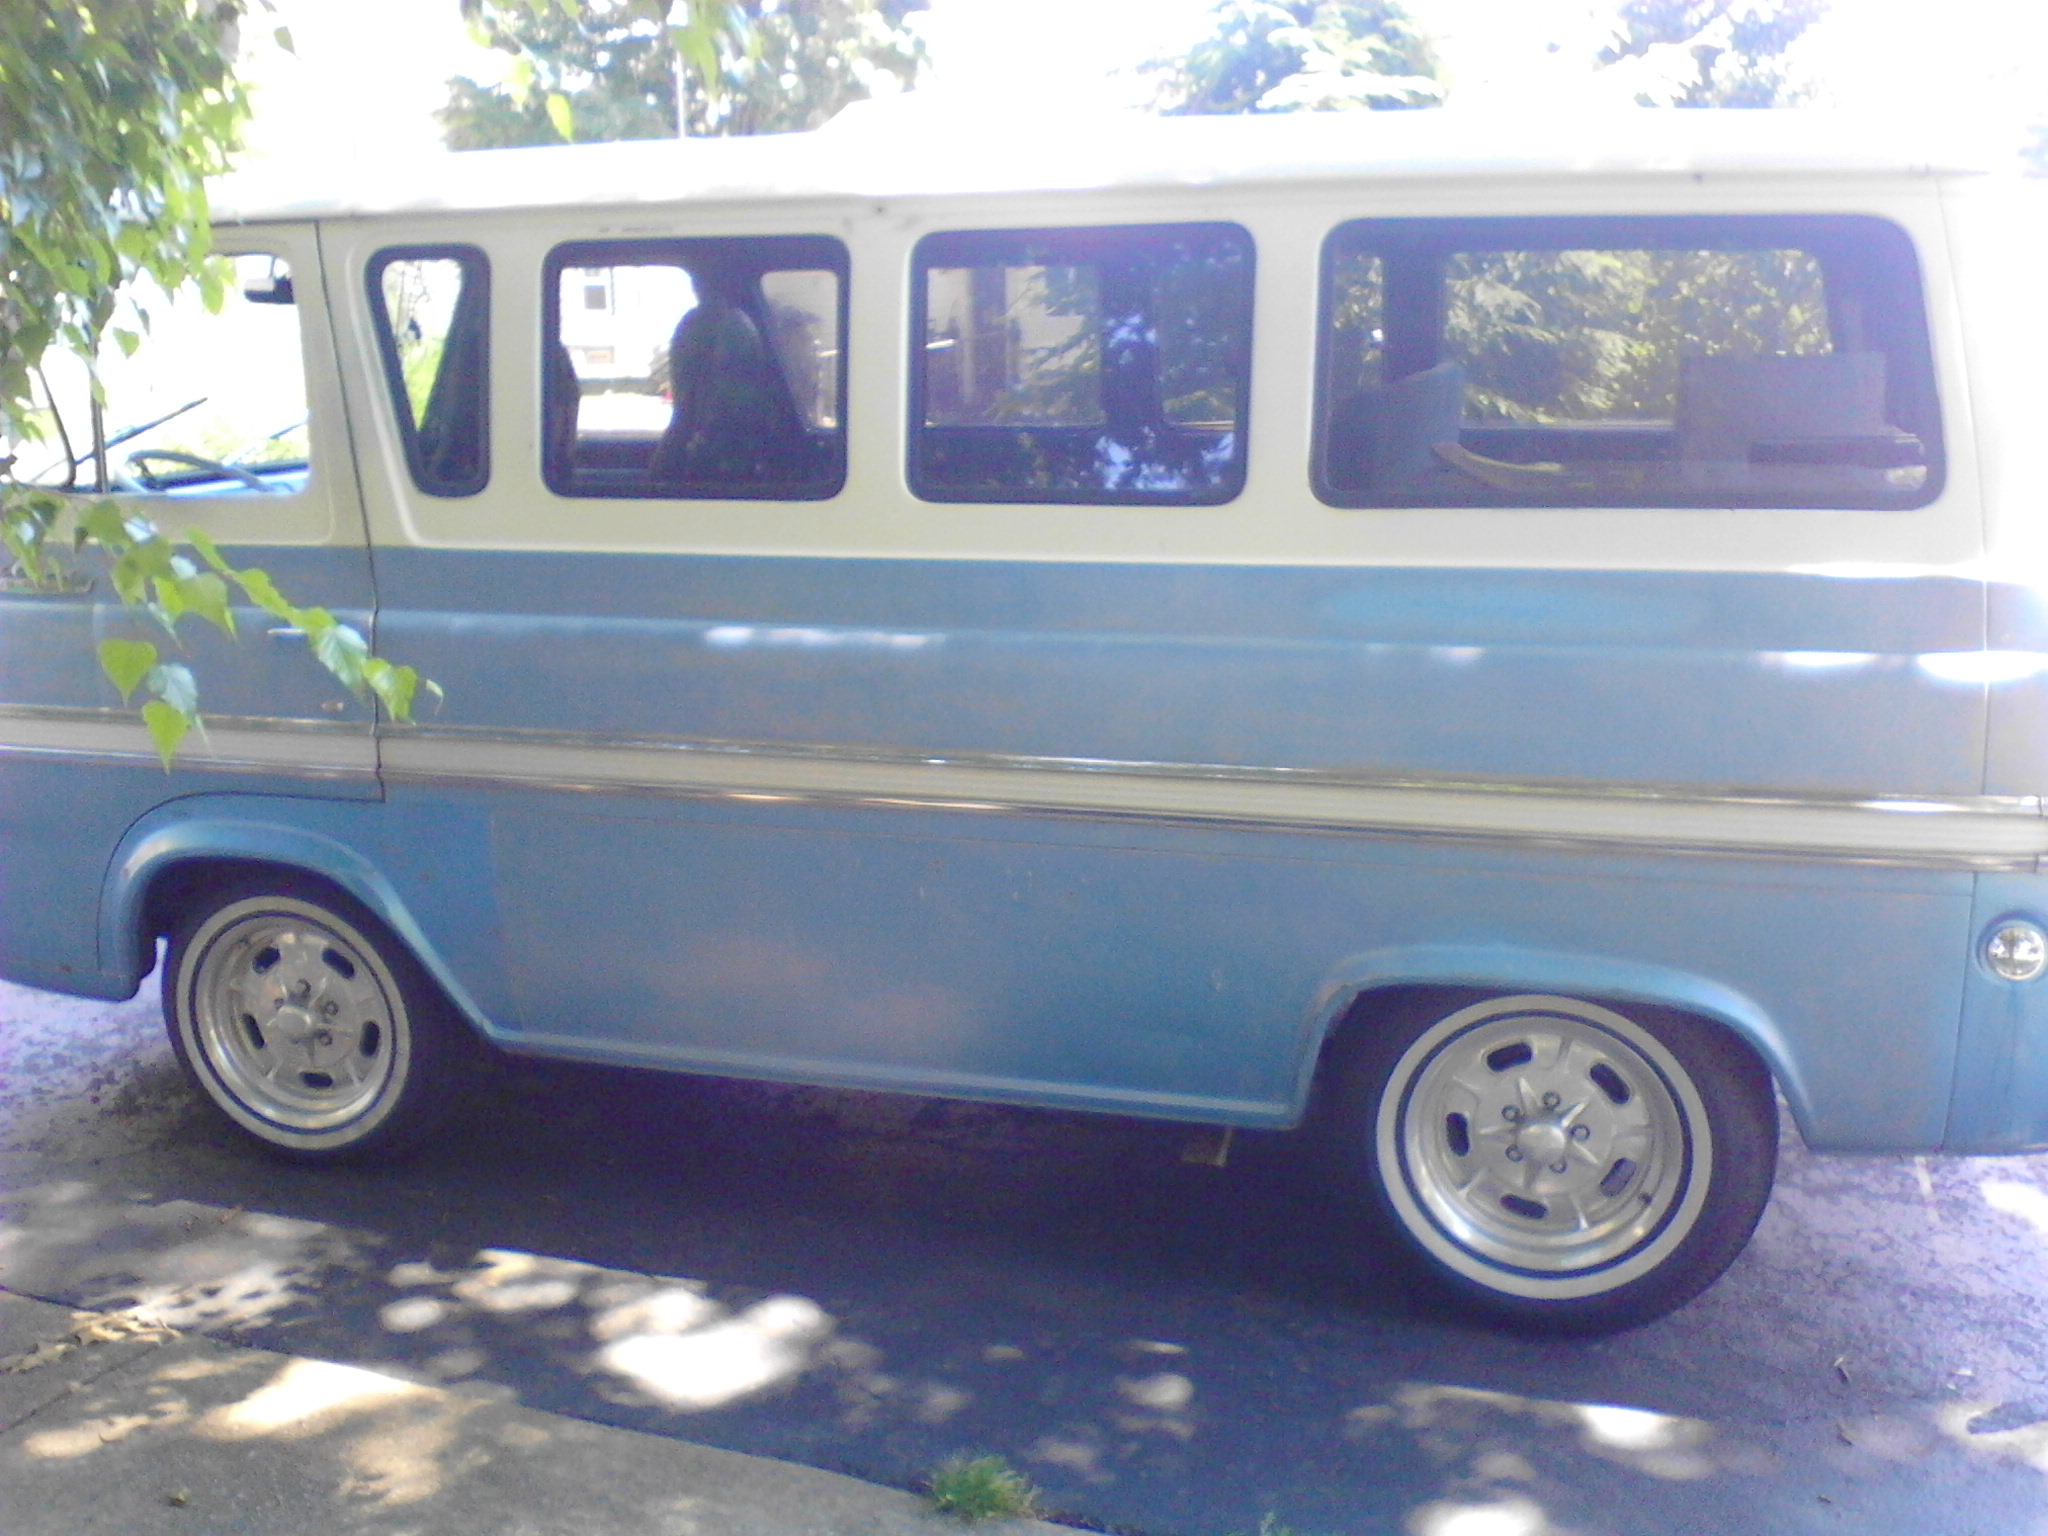 Tire Rack For Garage besides 215164 1954 Plymouth 2 Dr Wagon likewise Why does my air conditioner Heater fan only work on High together with Air Conditioning Service further Daytona 500 Paint Scheme Preview. on fan in car stops working